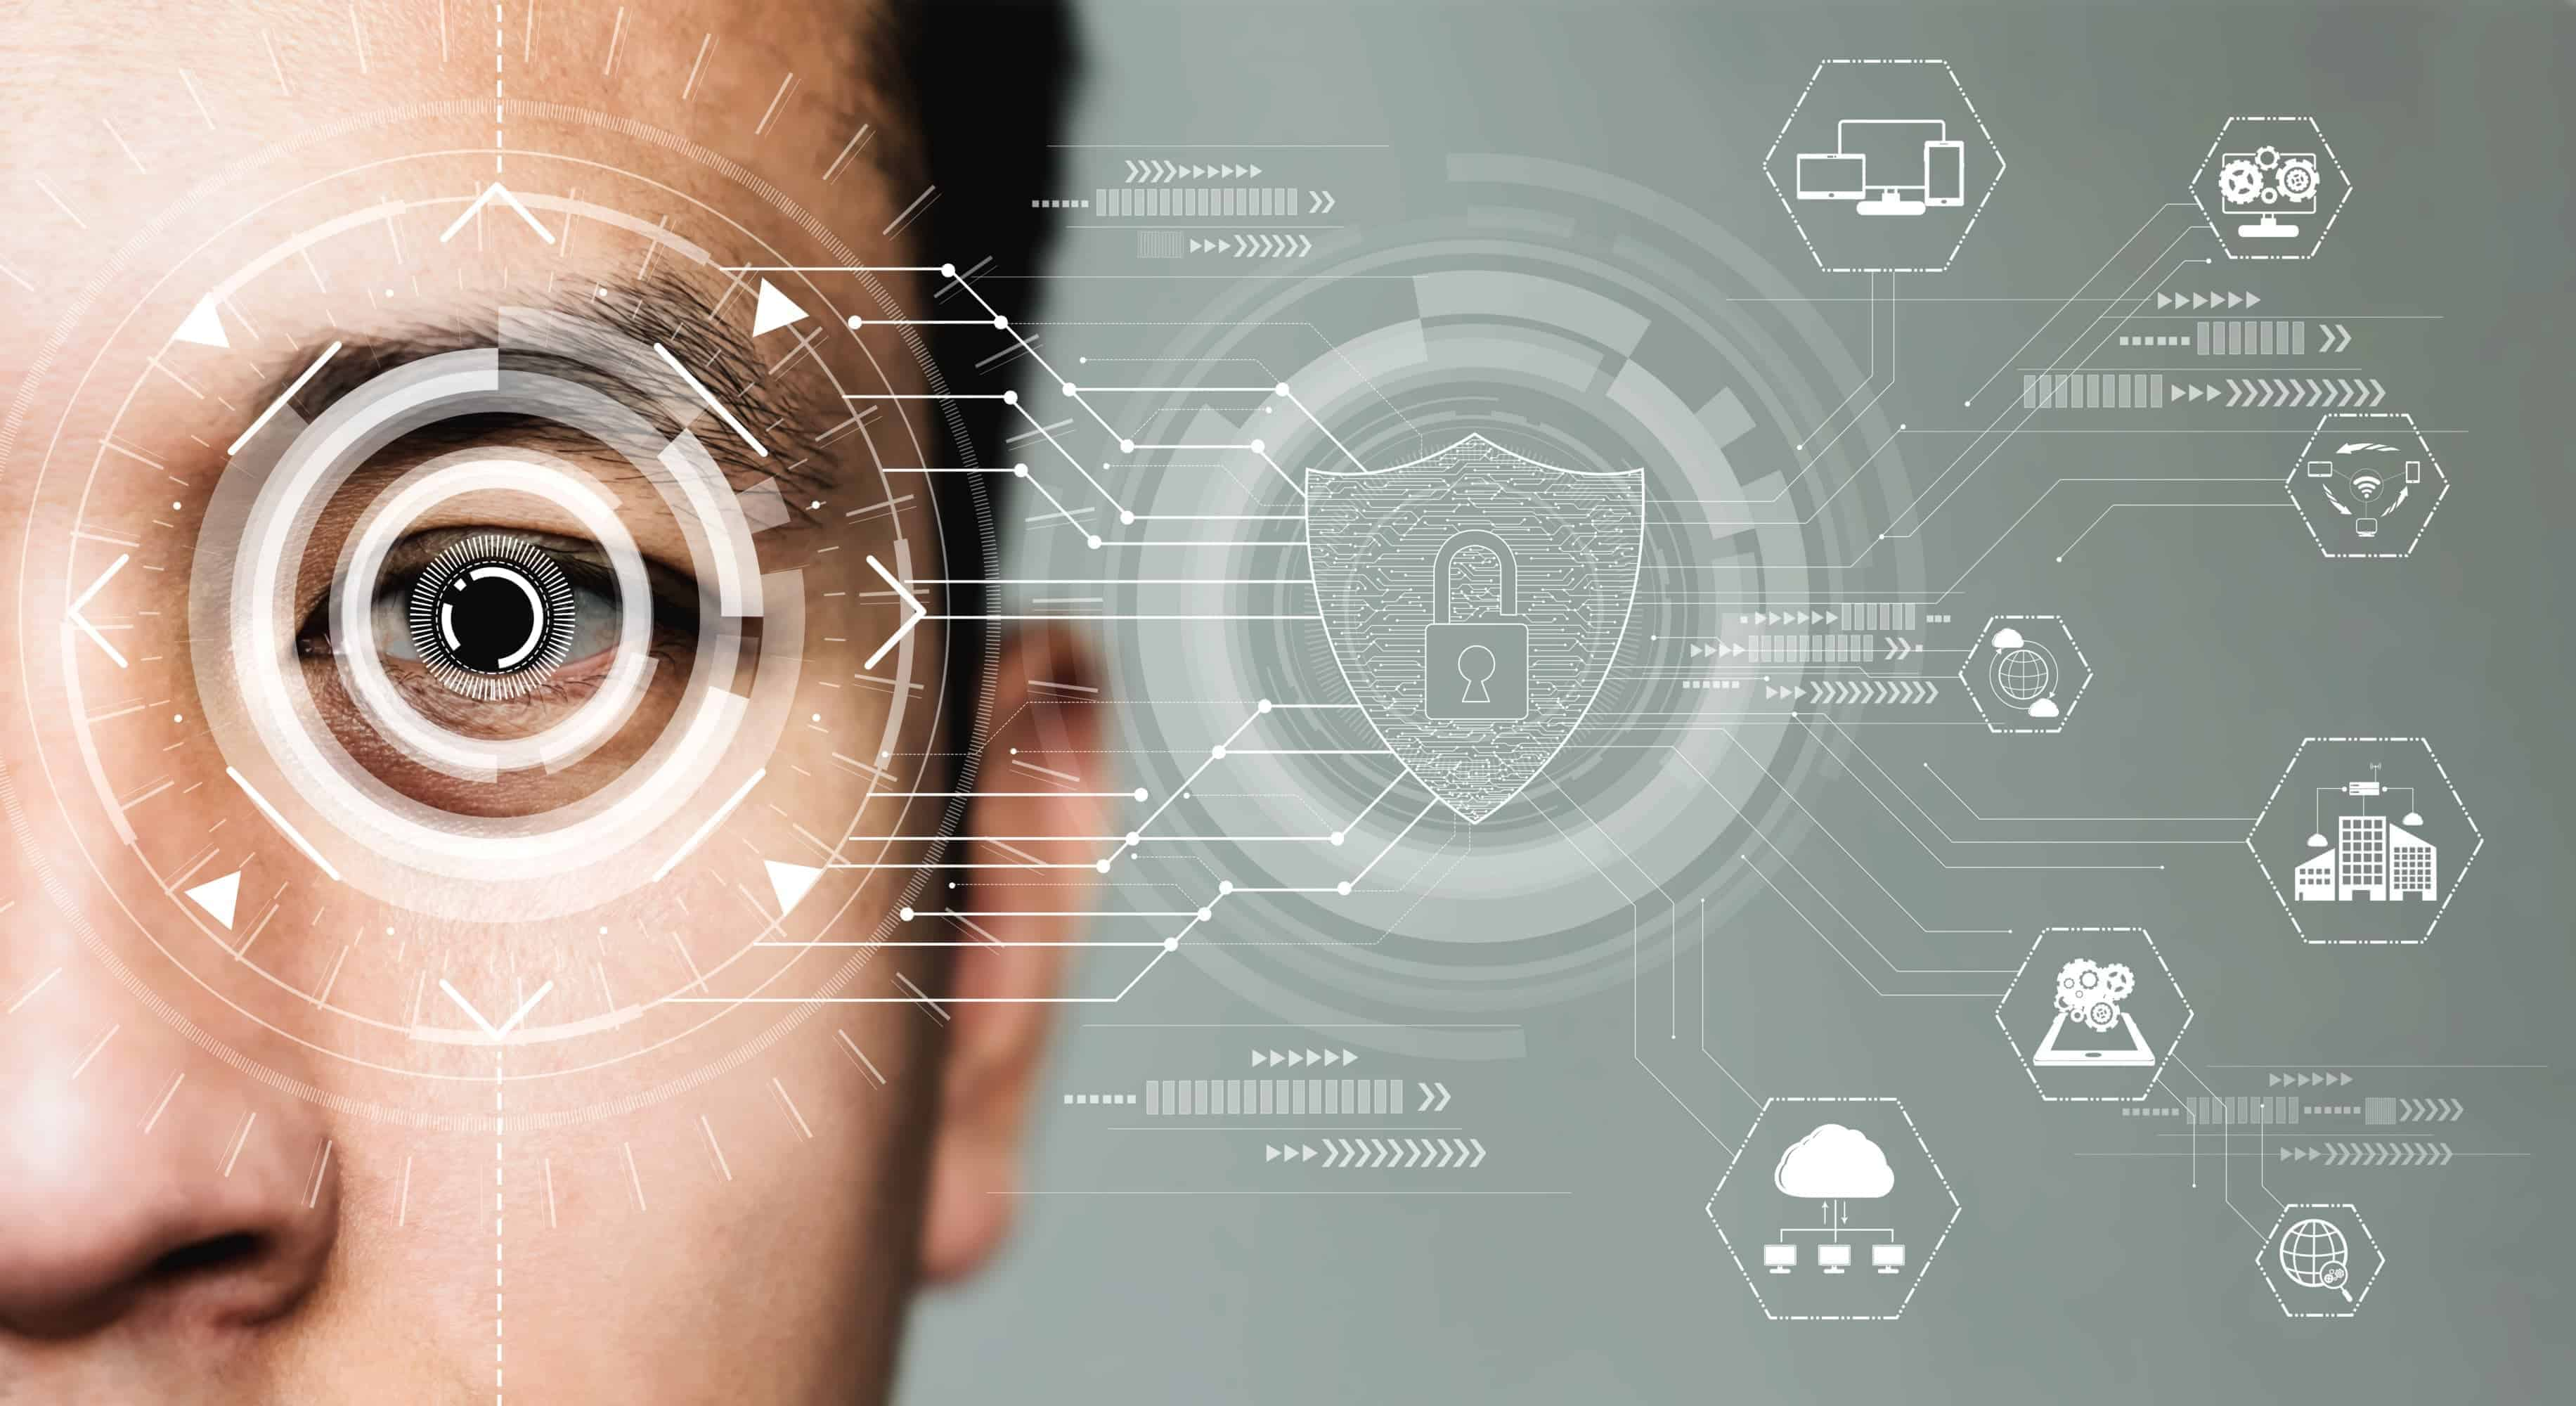 The 5 Most Amazing Computer Vision Techniques to Learn